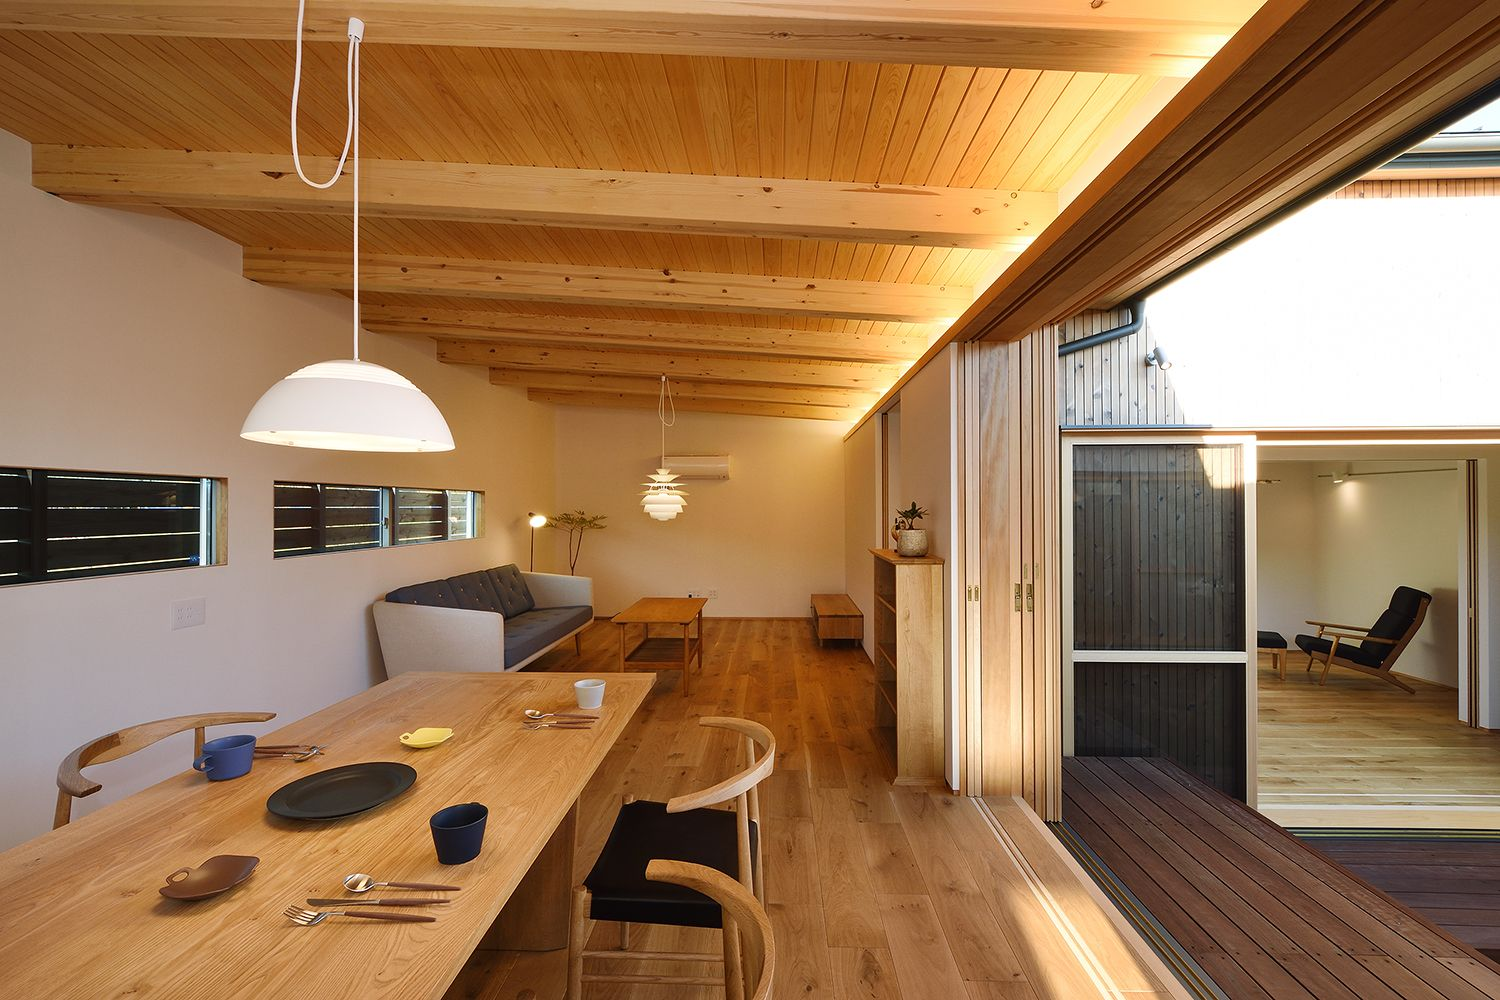 平屋 マイホーム Se構法 Architect Architecture Design Desiginer House